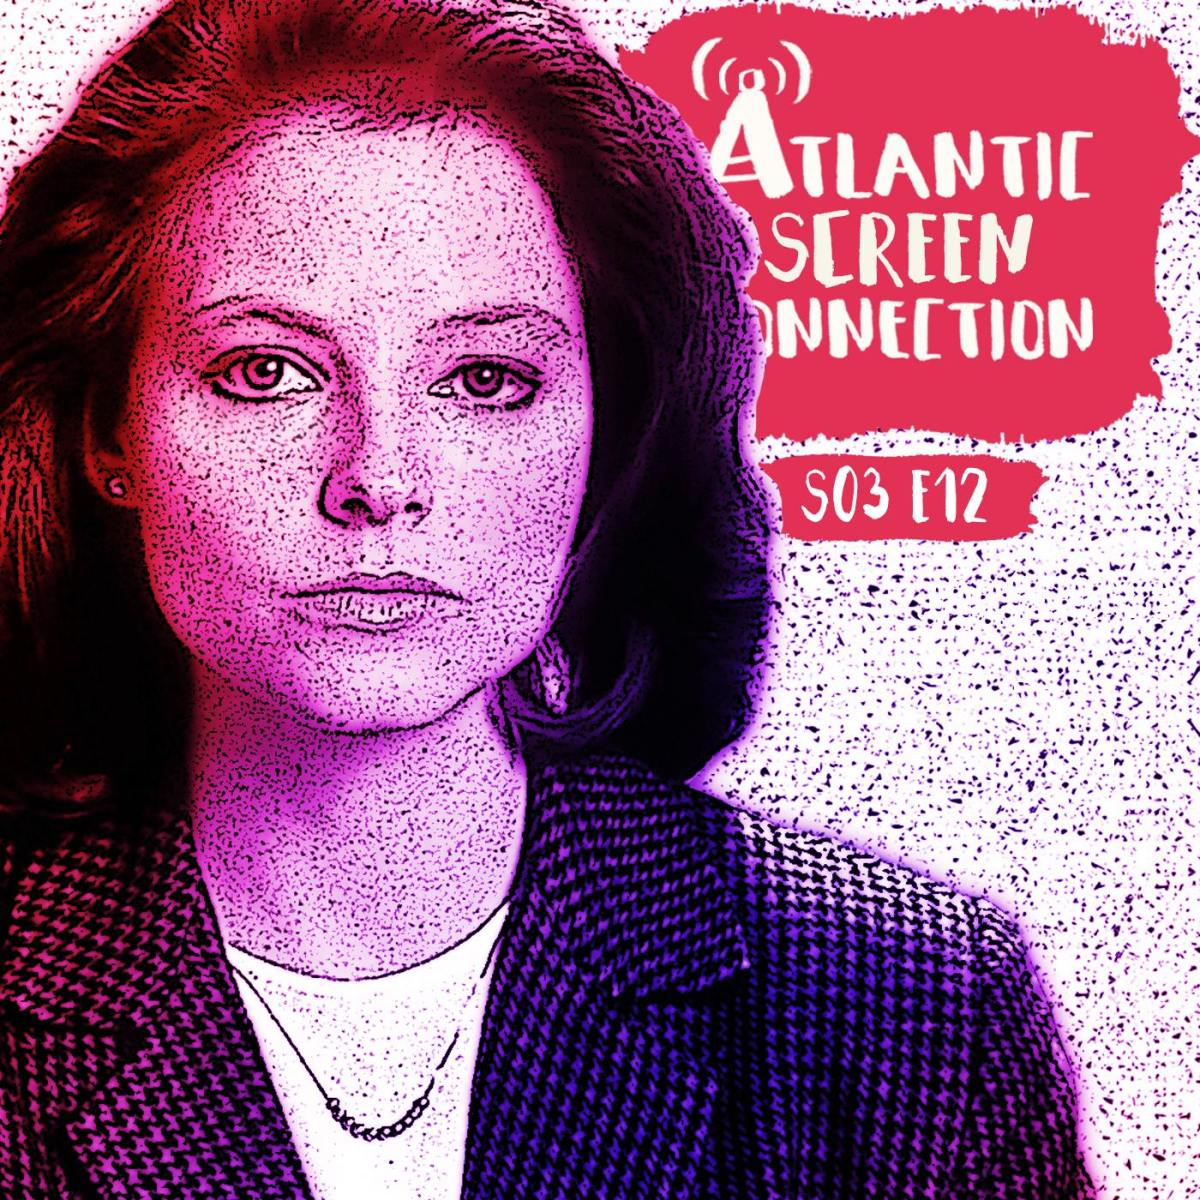 PODCAST: The Silence of the Lambs (S03E12)